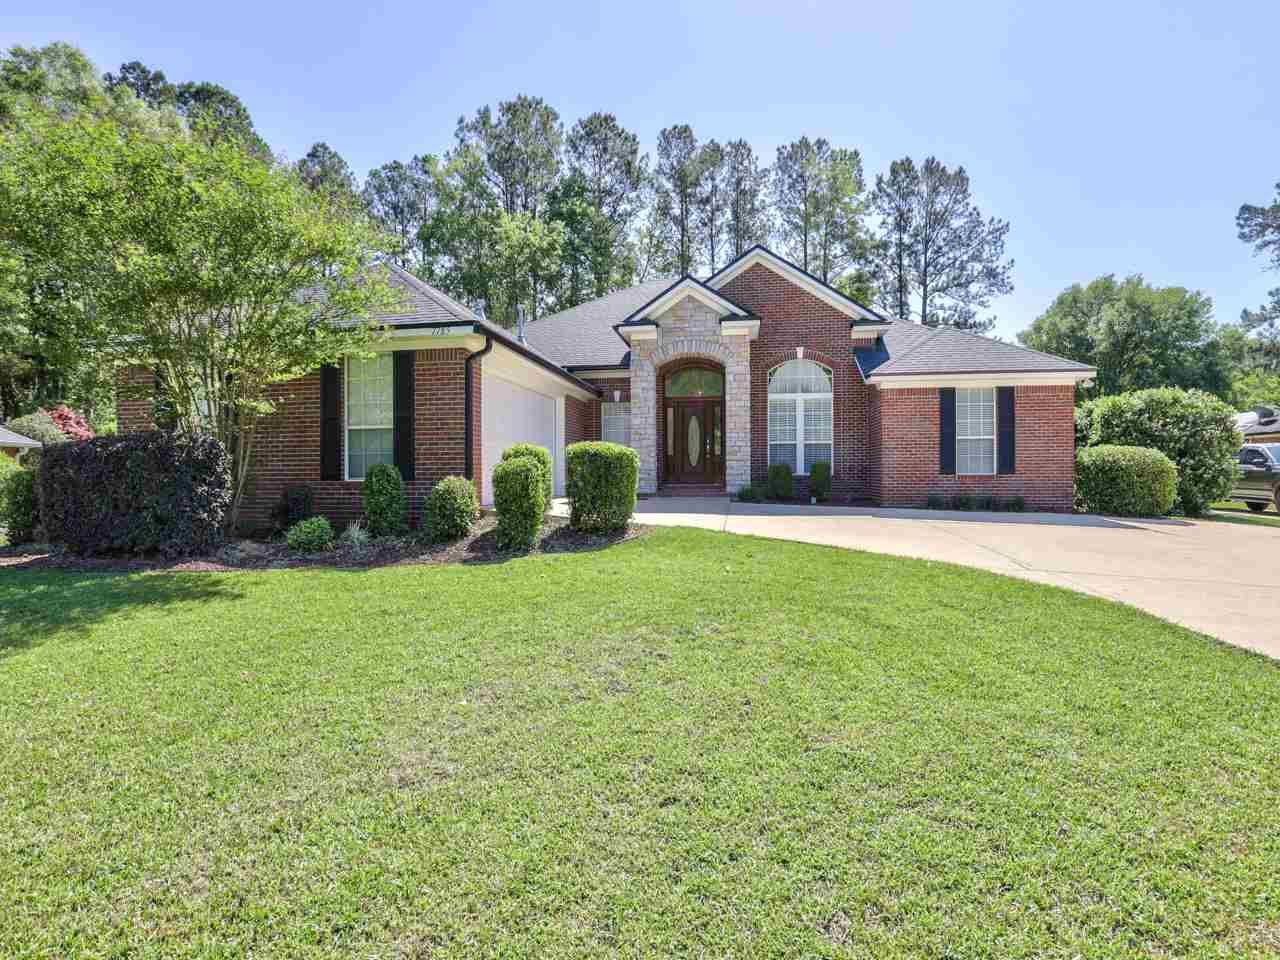 Photo of 7785 Cricklewood Drive, TALLAHASSEE, FL 32312 (MLS # 330501)